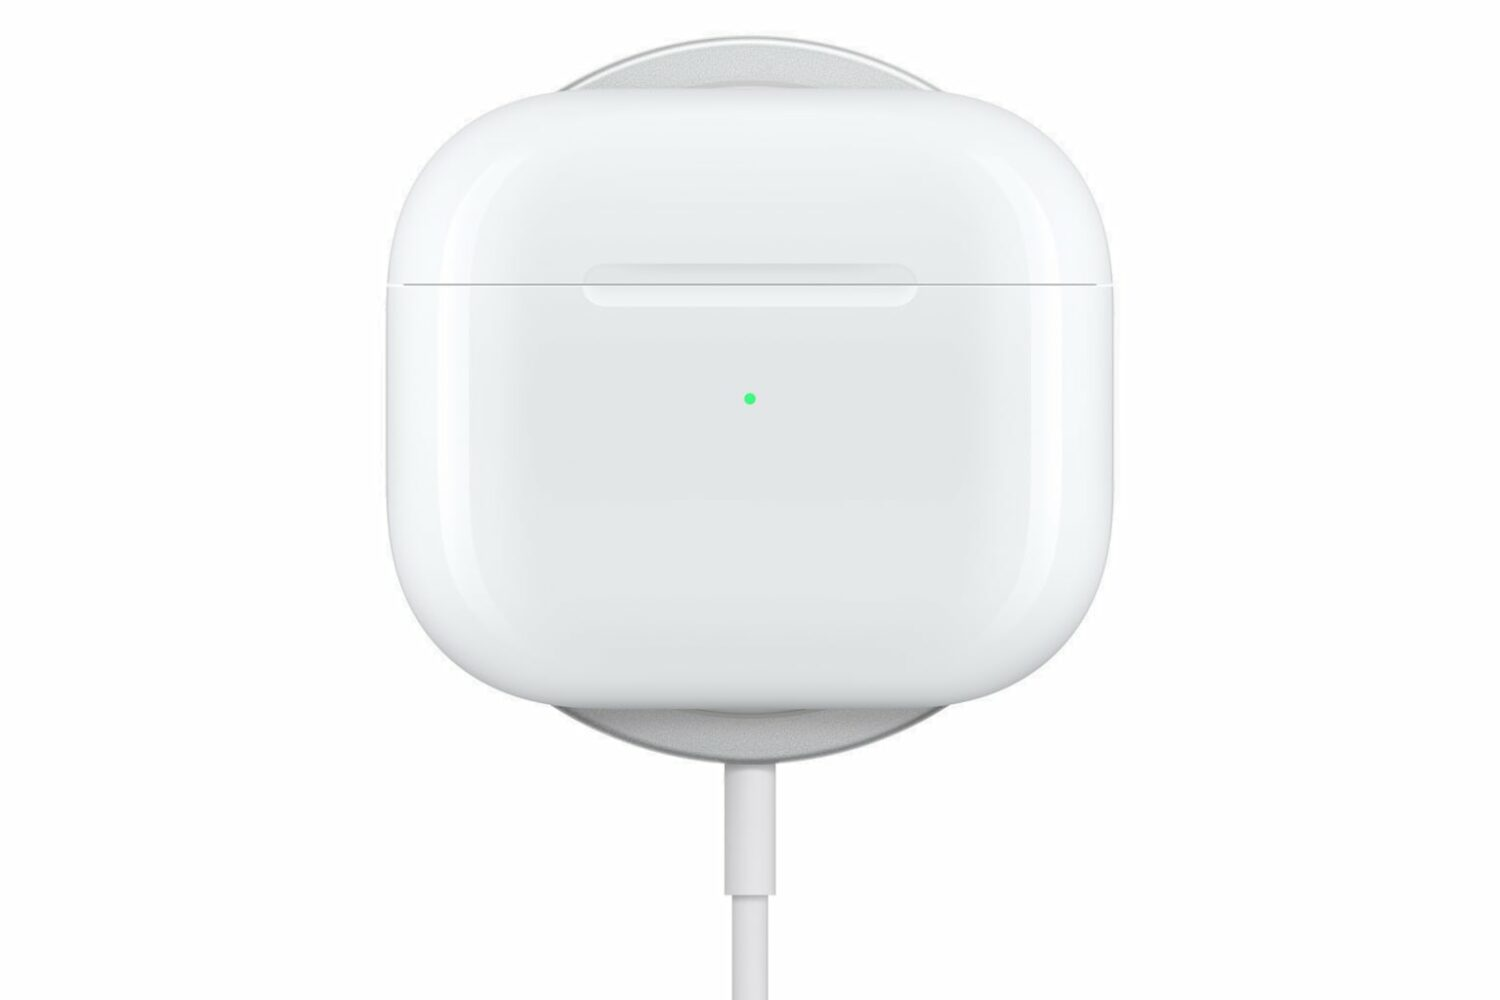 Apple's marketing image showing the AirPods 3 charging case sitting on a MagSafe wireless charging puck